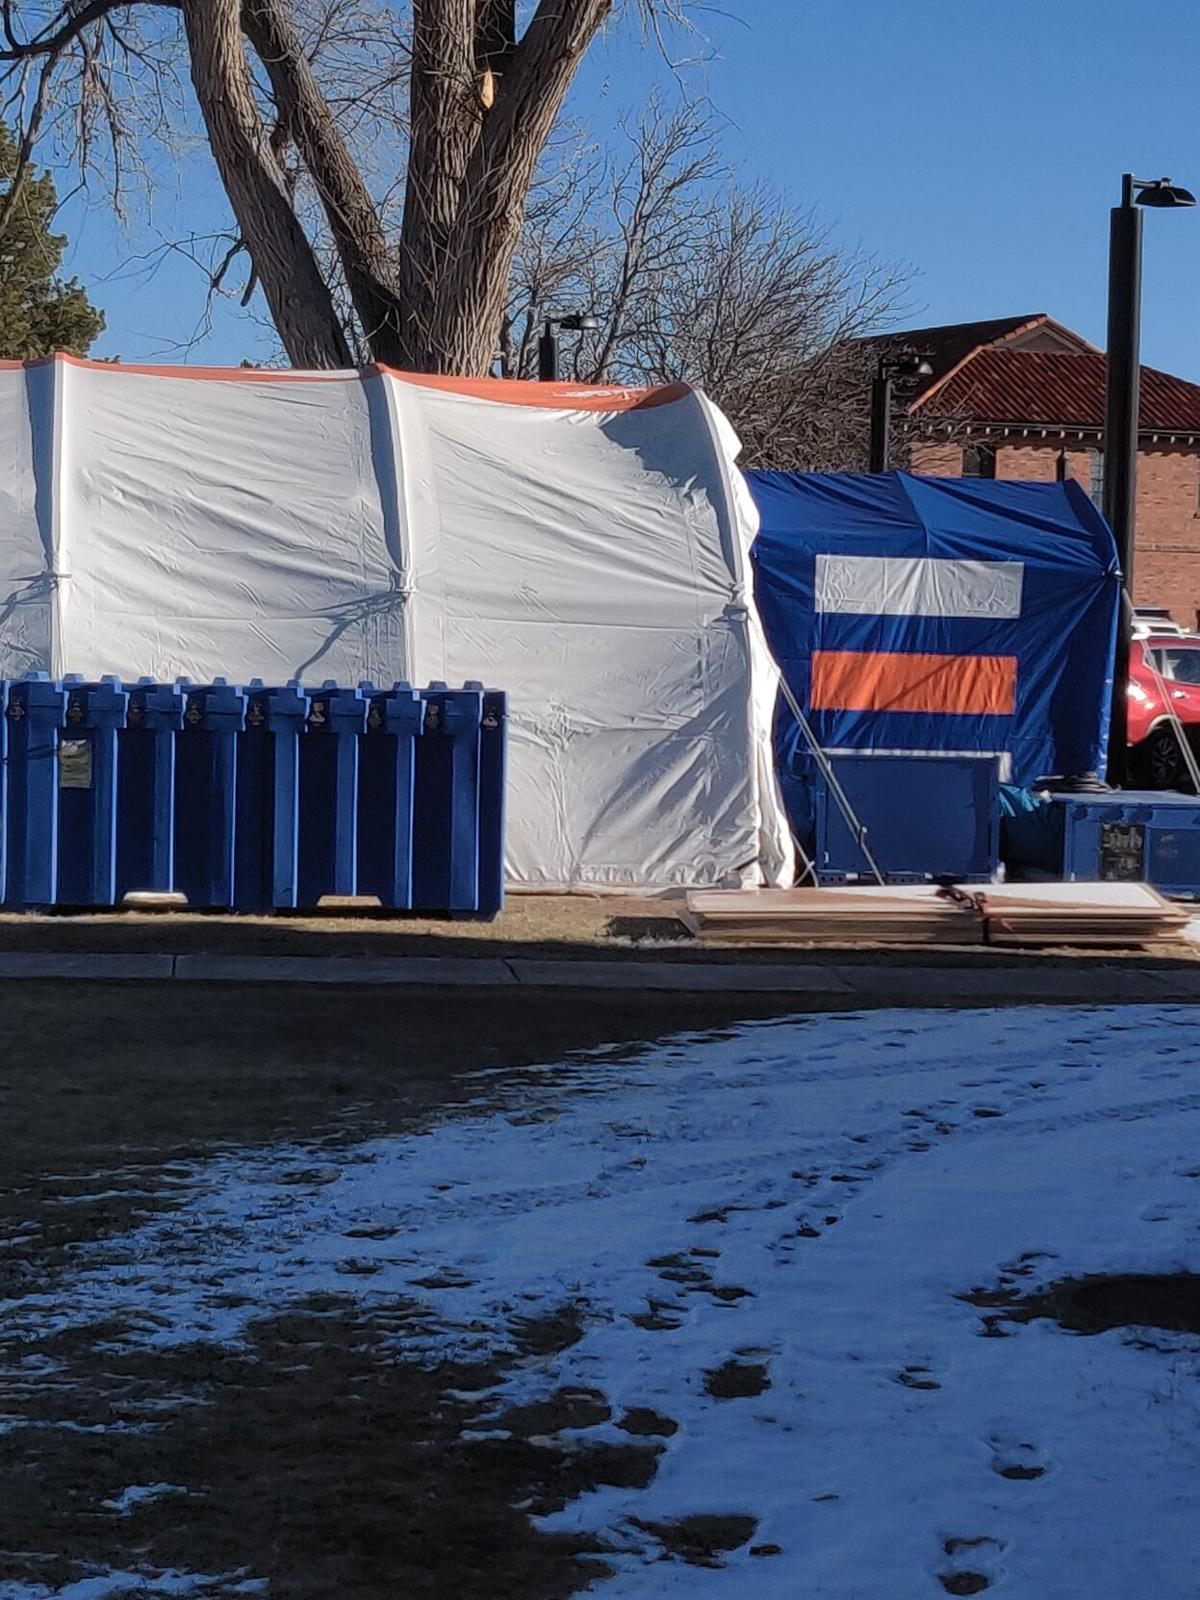 Tent set up for Covid patients at Cheyenne VA Hospital photo